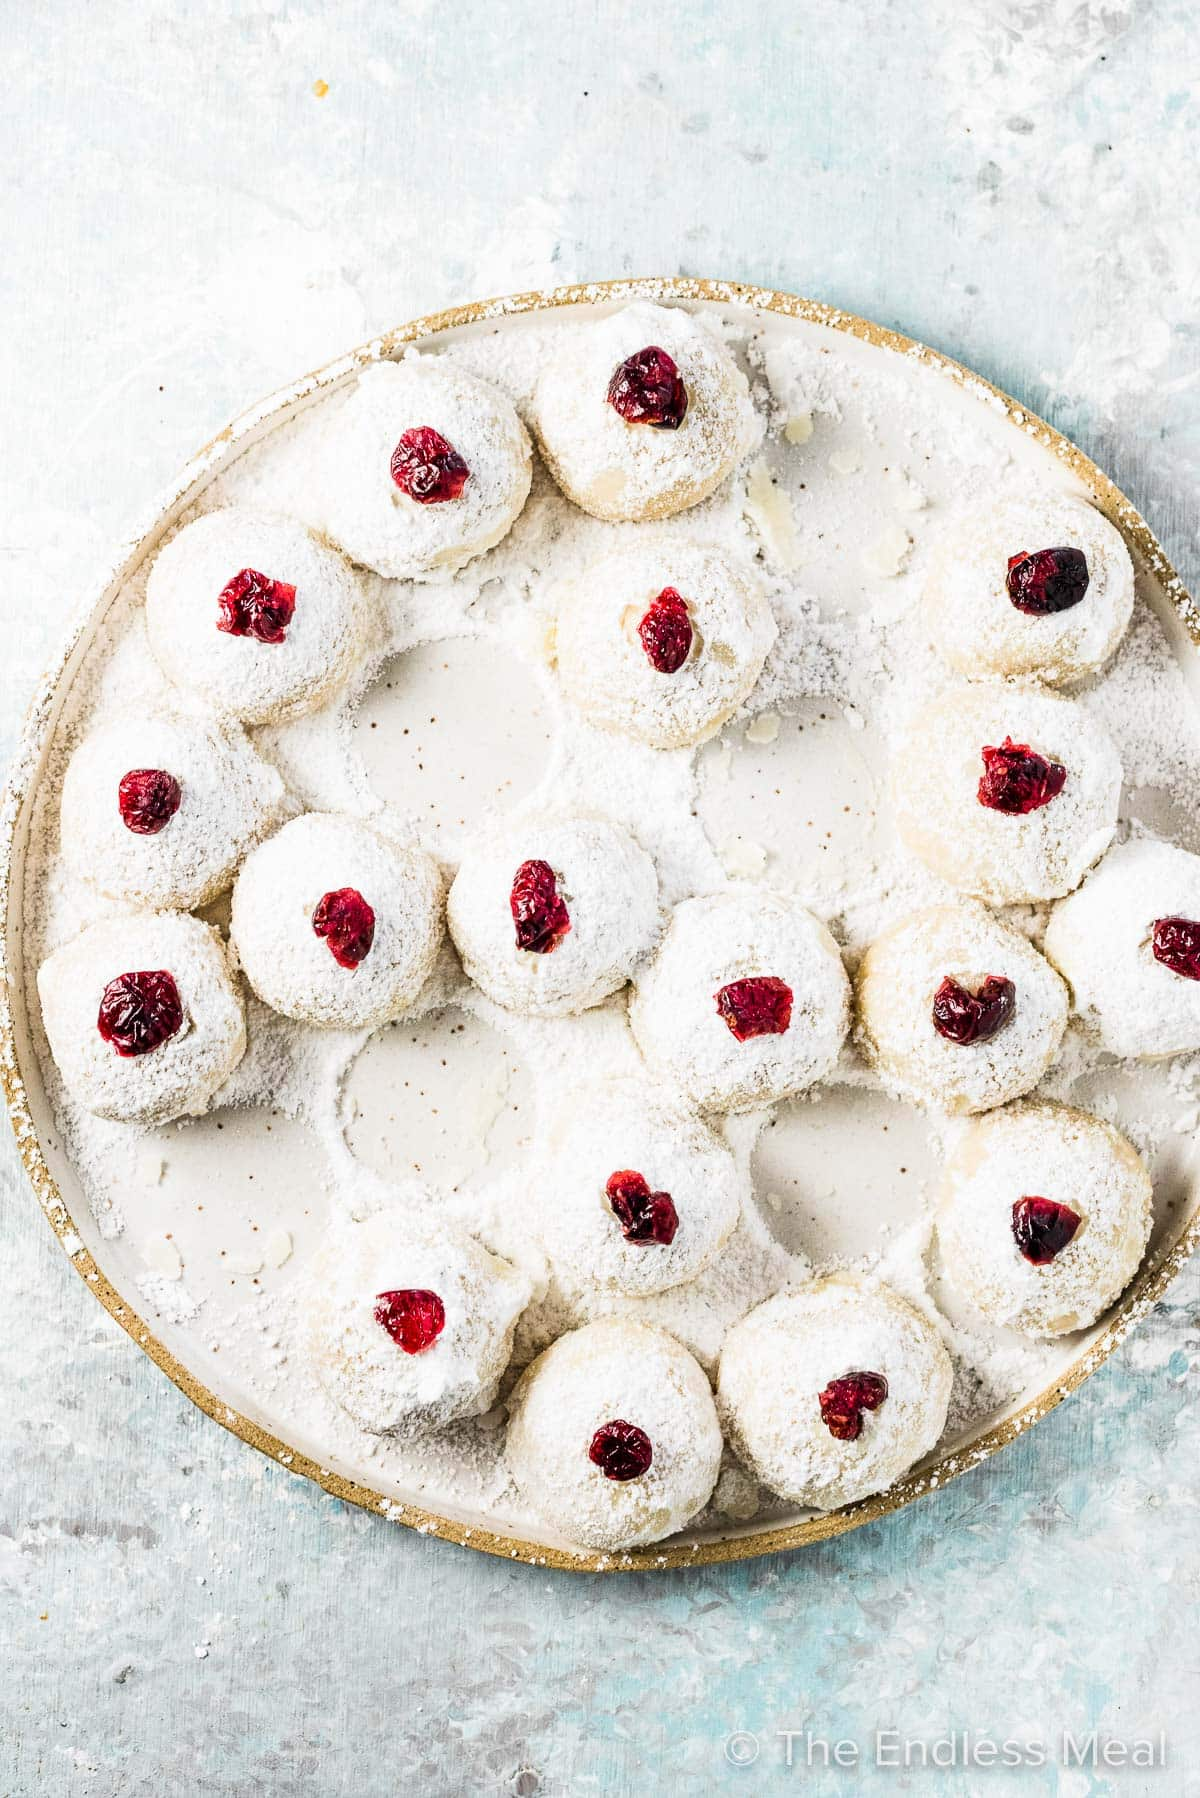 A plate of almond flour shortbread cookies topped with cranberries with a few missing from the plate.